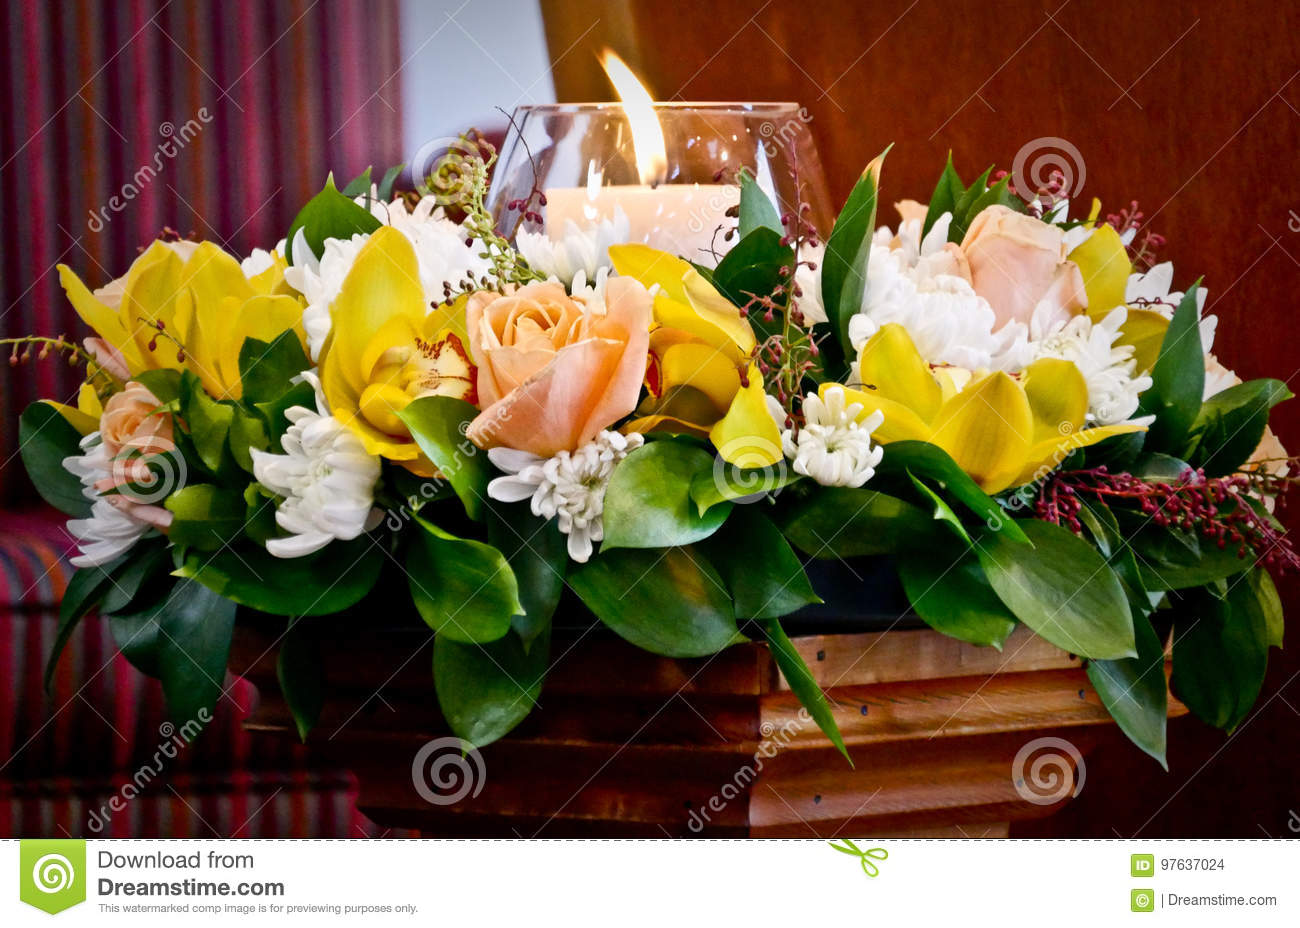 Flowers Ready For Funeral Service Stock Photo Image Of Service